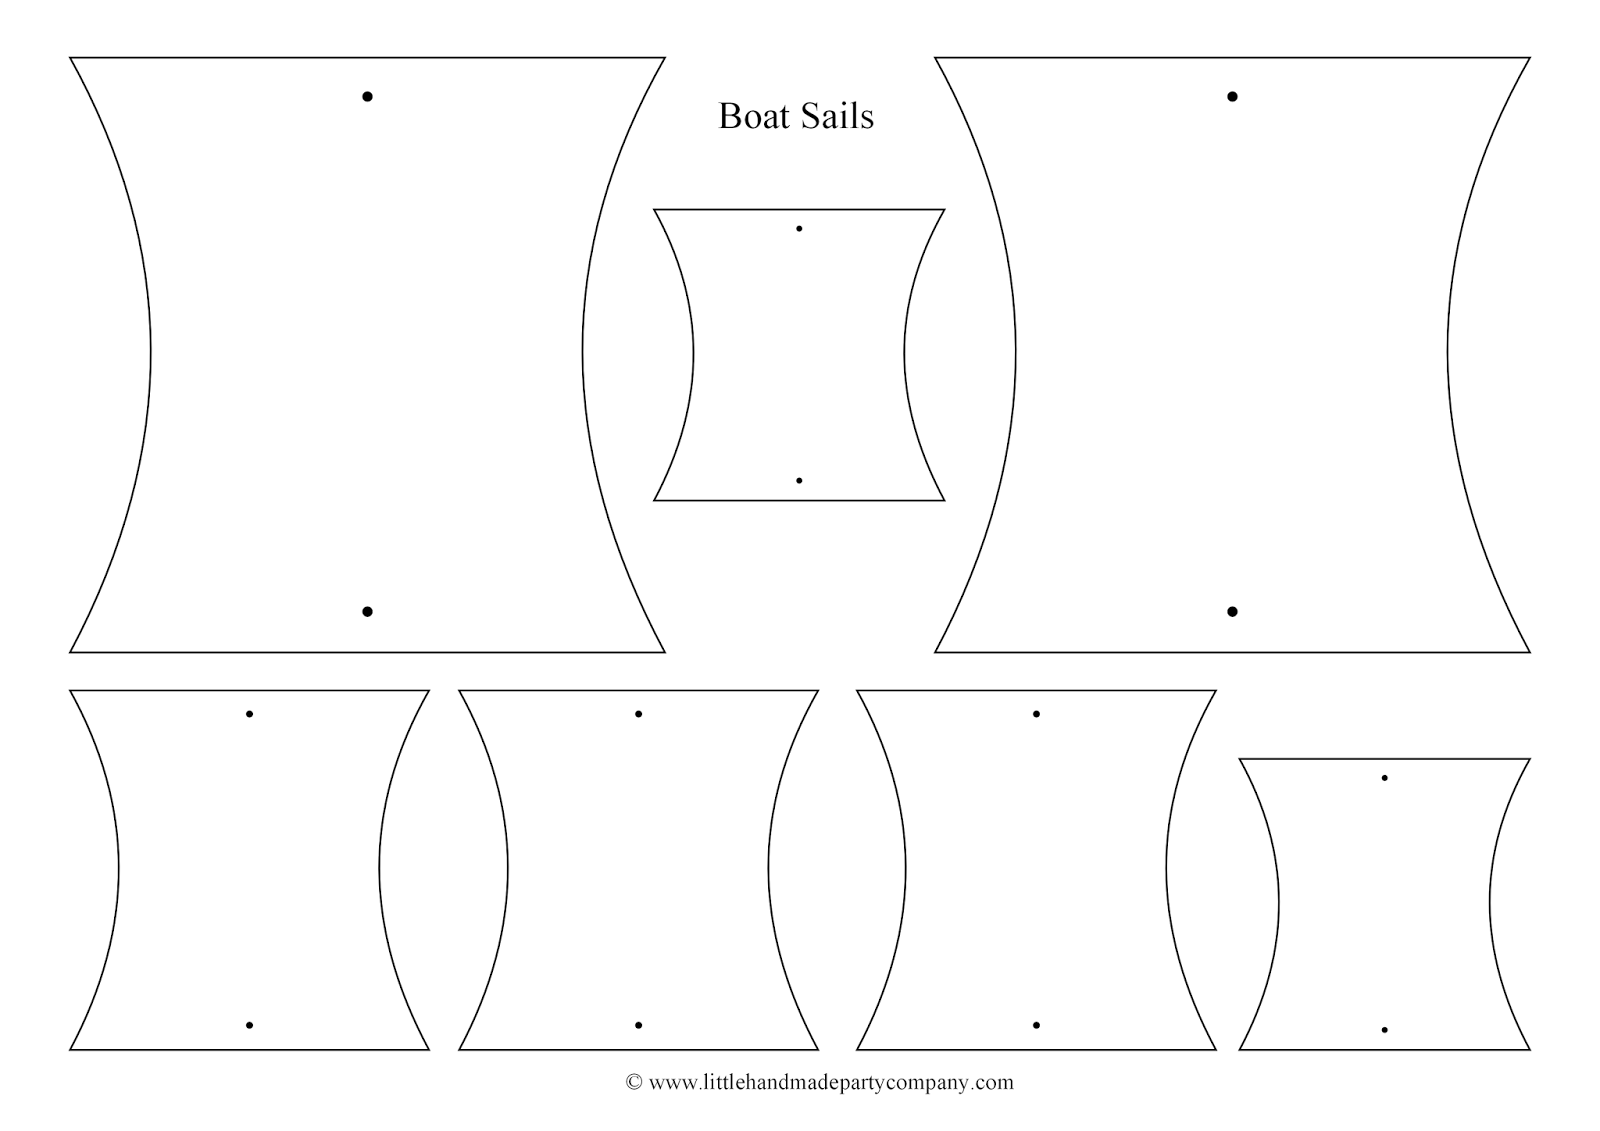 pirate ship sail template little handmade party company